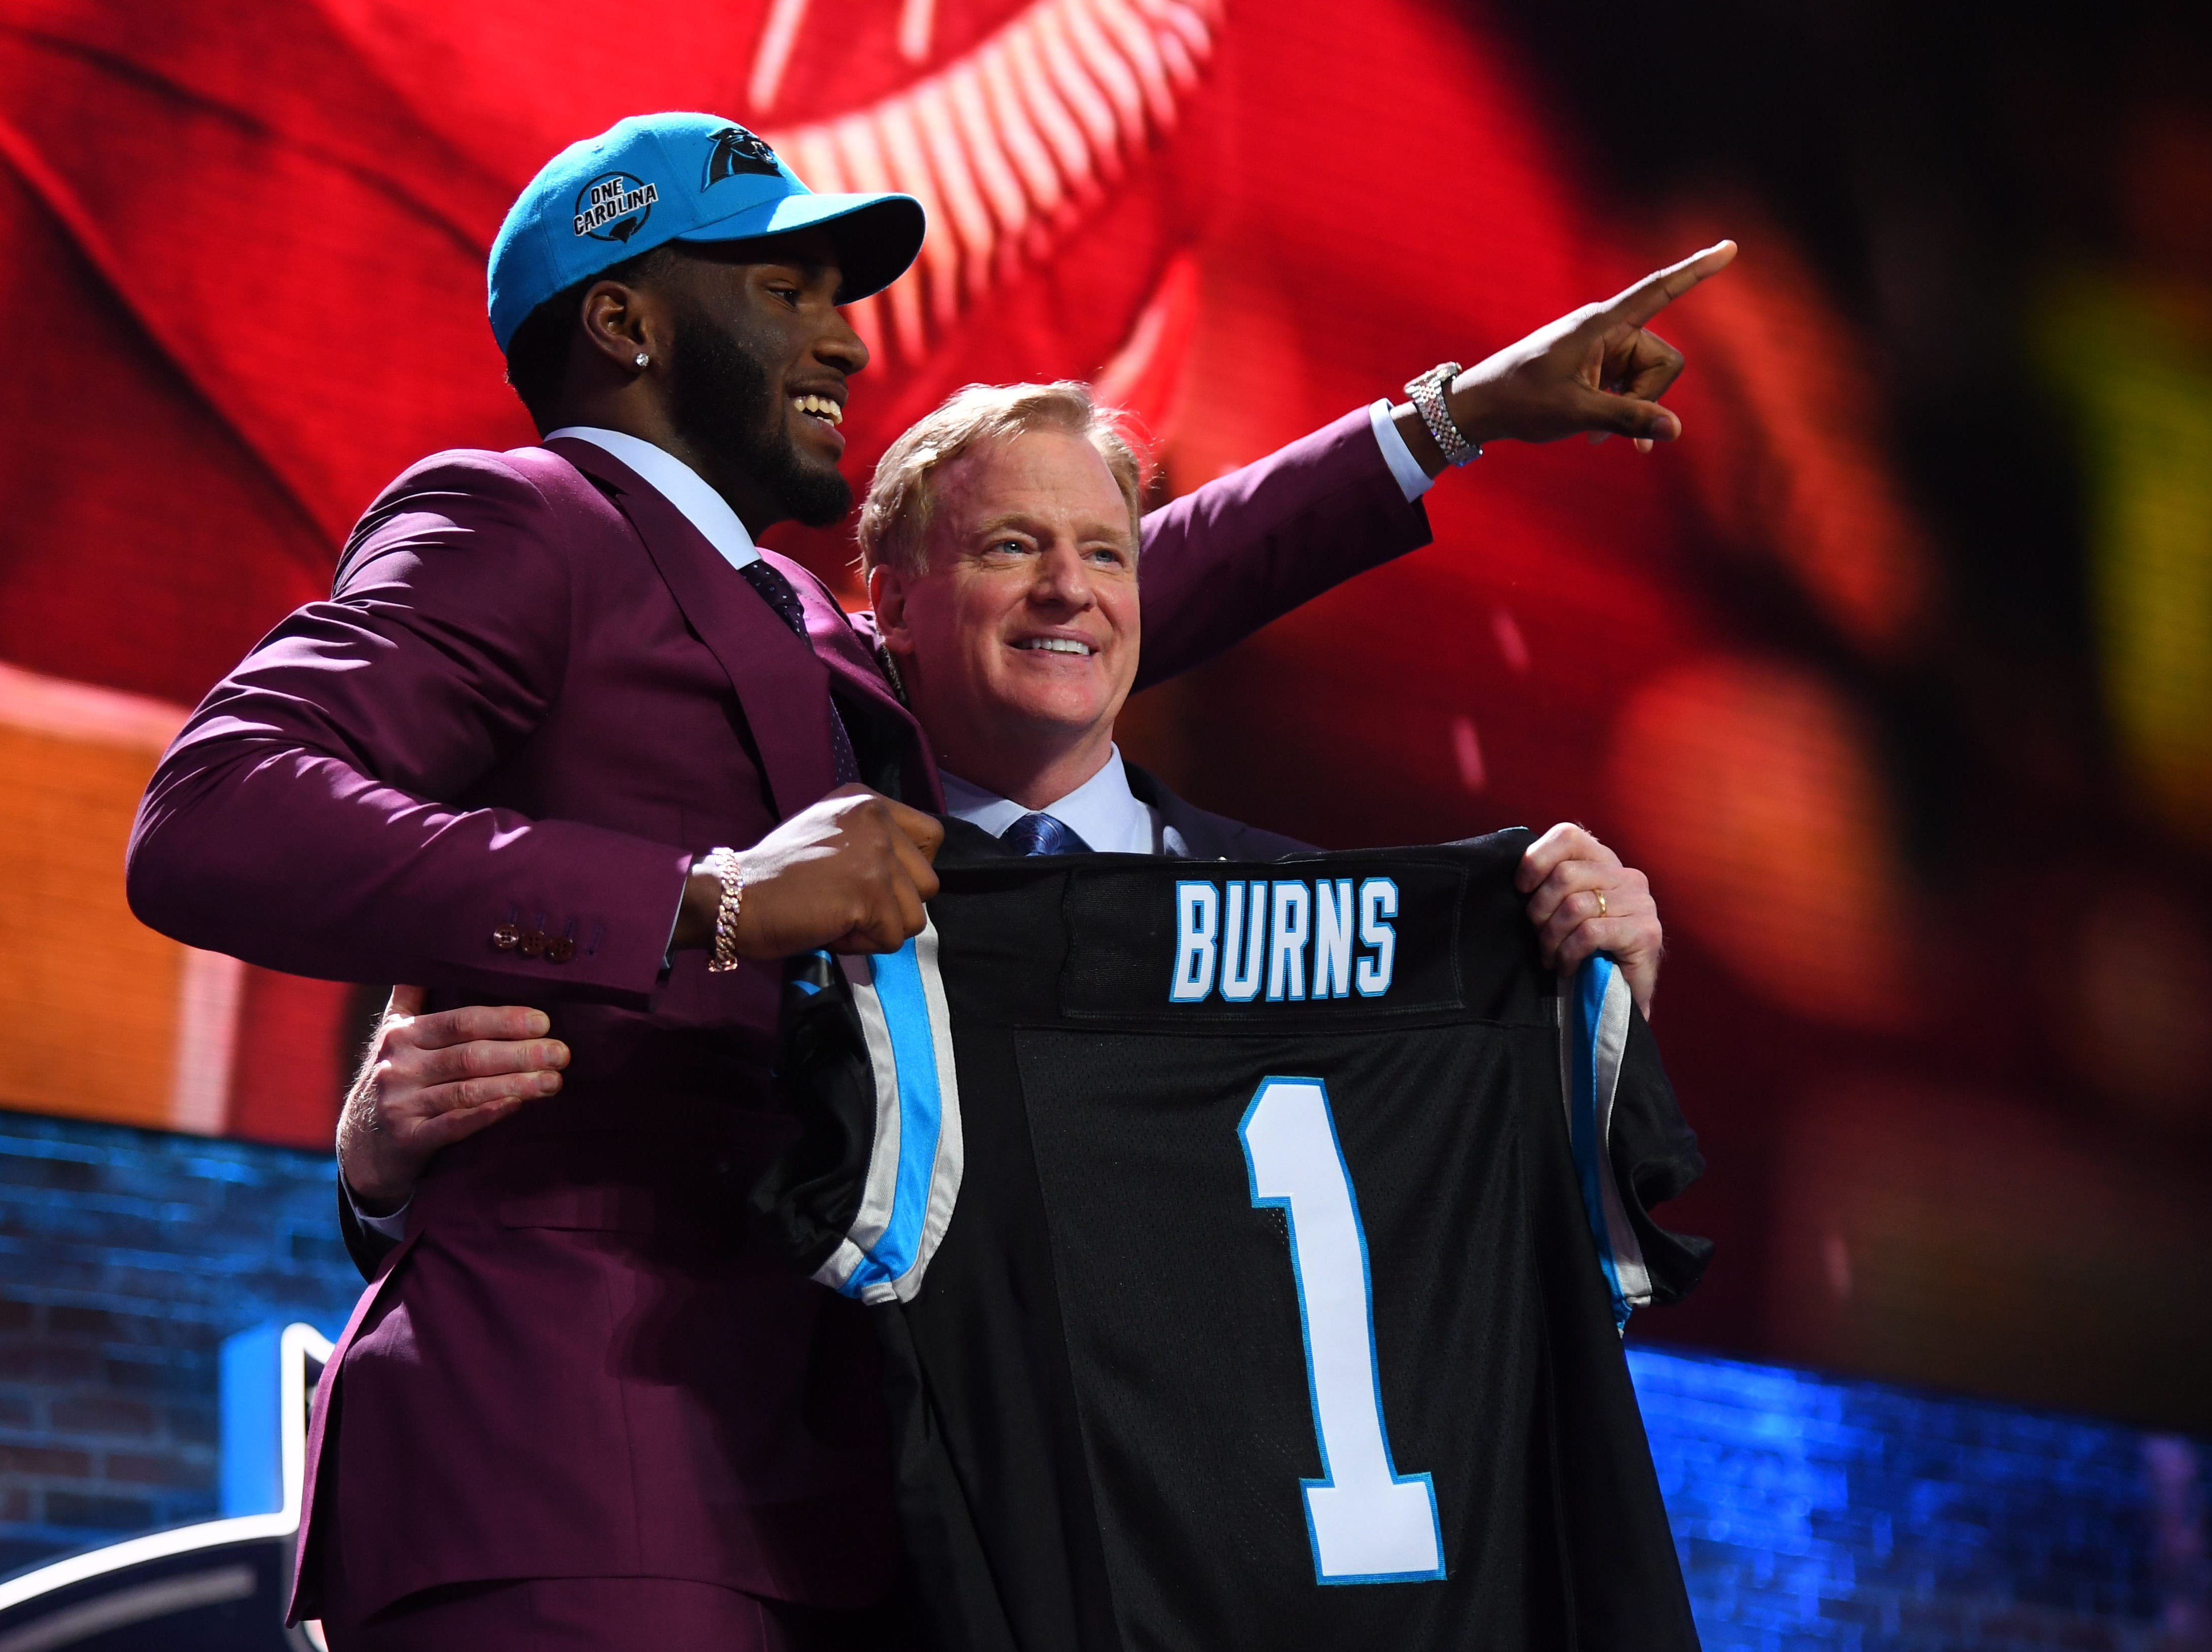 Apr 25, 2019; Nashville, TN, USA; Brian Burns (Florida State) stands with NFL commissioner Roger Goodell after he was selected as the number sixteen overall pick to the Carolina Panthers in the first round of the 2019 NFL Draft in Downtown Nashville. Mandatory Credit: Christopher Hanewinckel-USA TODAY Sports